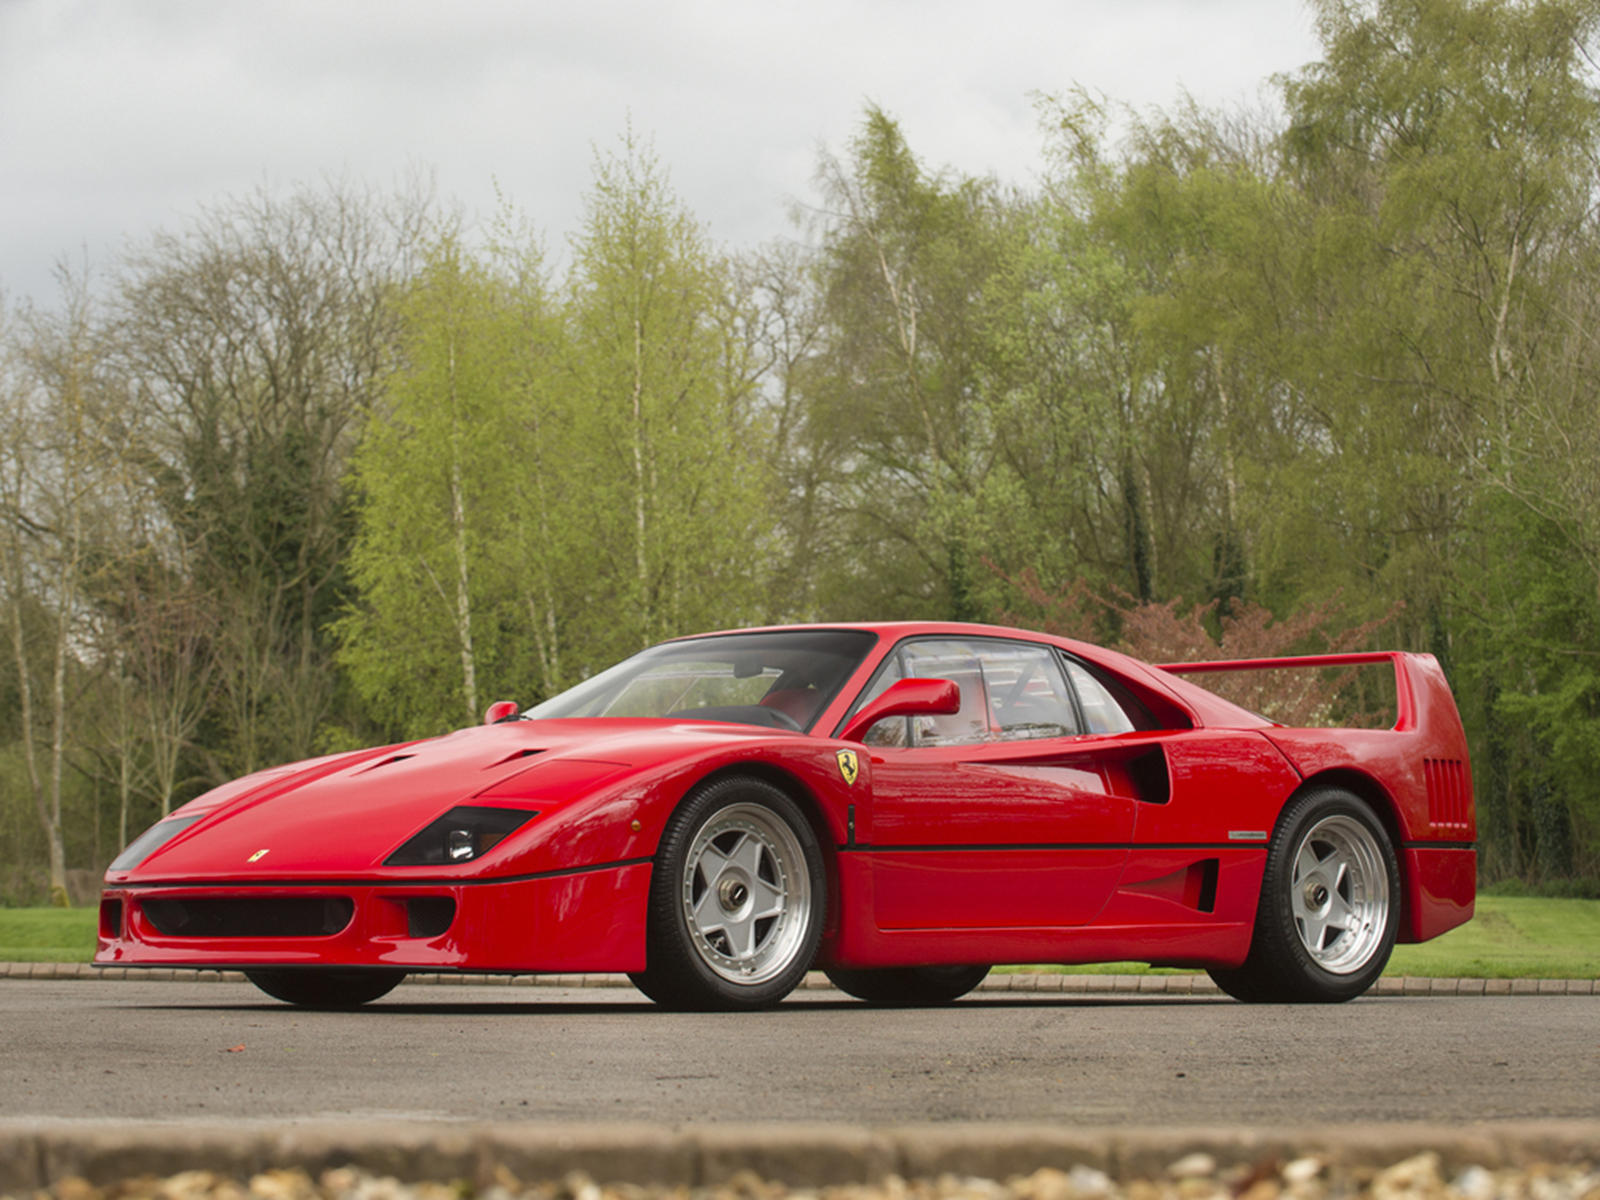 This Ultra Rare Ferrari F40 Prototype Is for Sale | News | SuperCars net